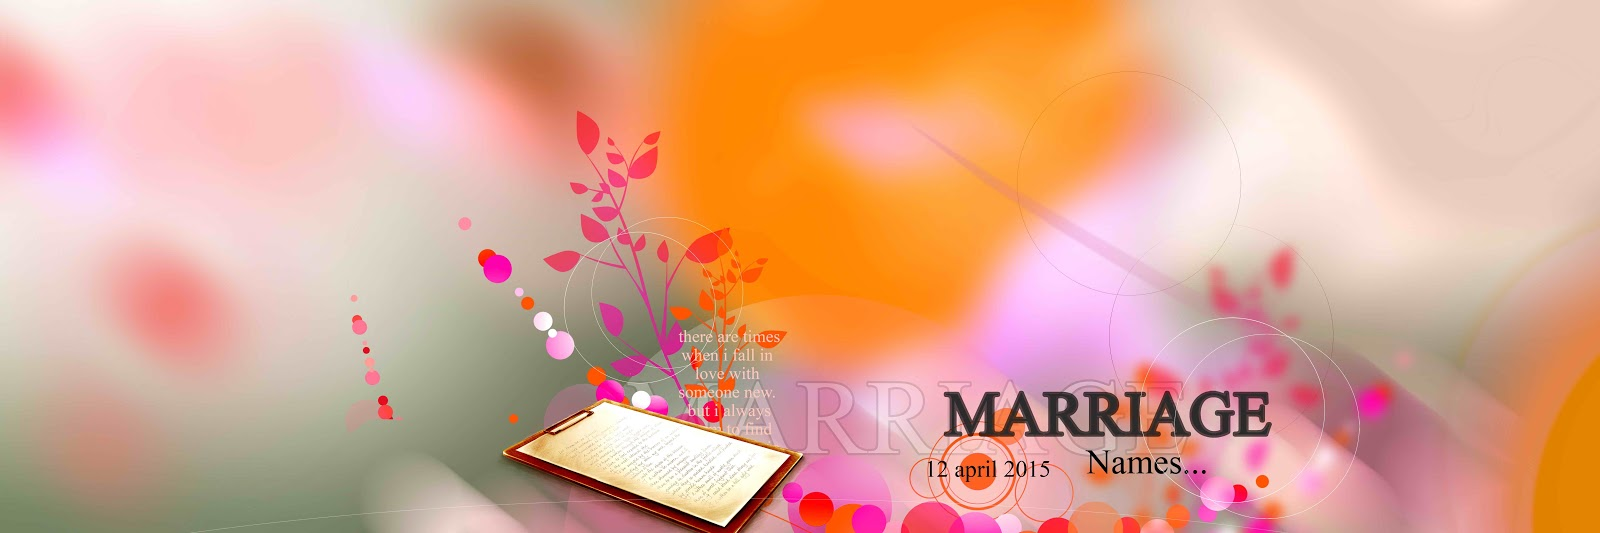 Marriage Background Hd Images Marriage Photos Background Images Hd